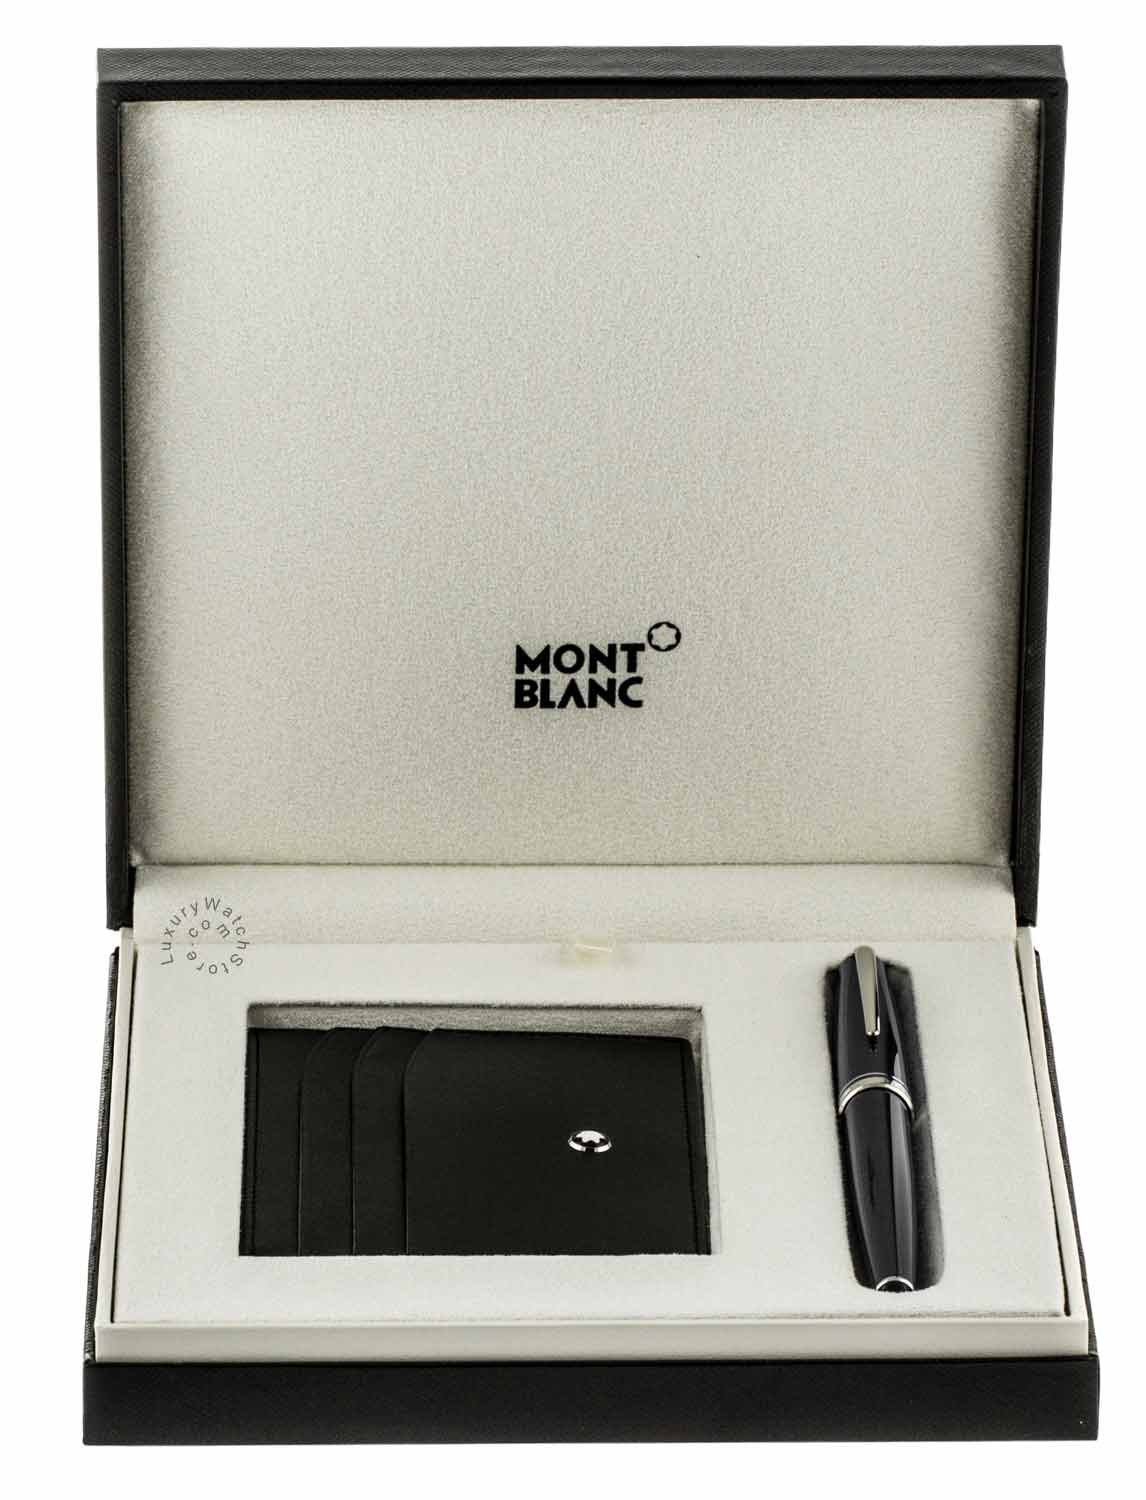 Montblanc Cruise RB Blue Pen & Meisterstuck Pocket Holder Set 114119